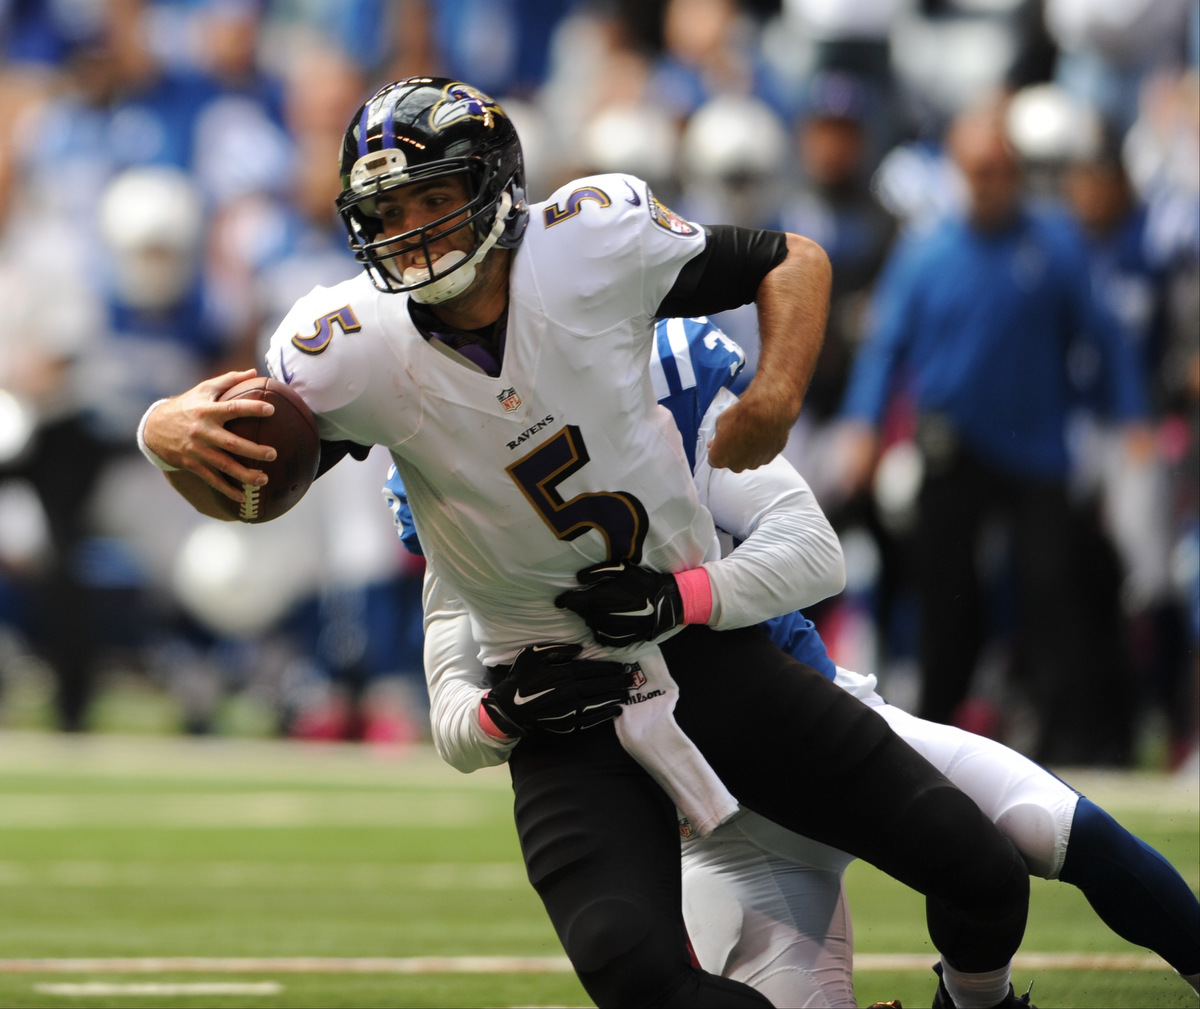 Rough Cut: Baltimore Ravens fall to Indianapolis Colts 20-13